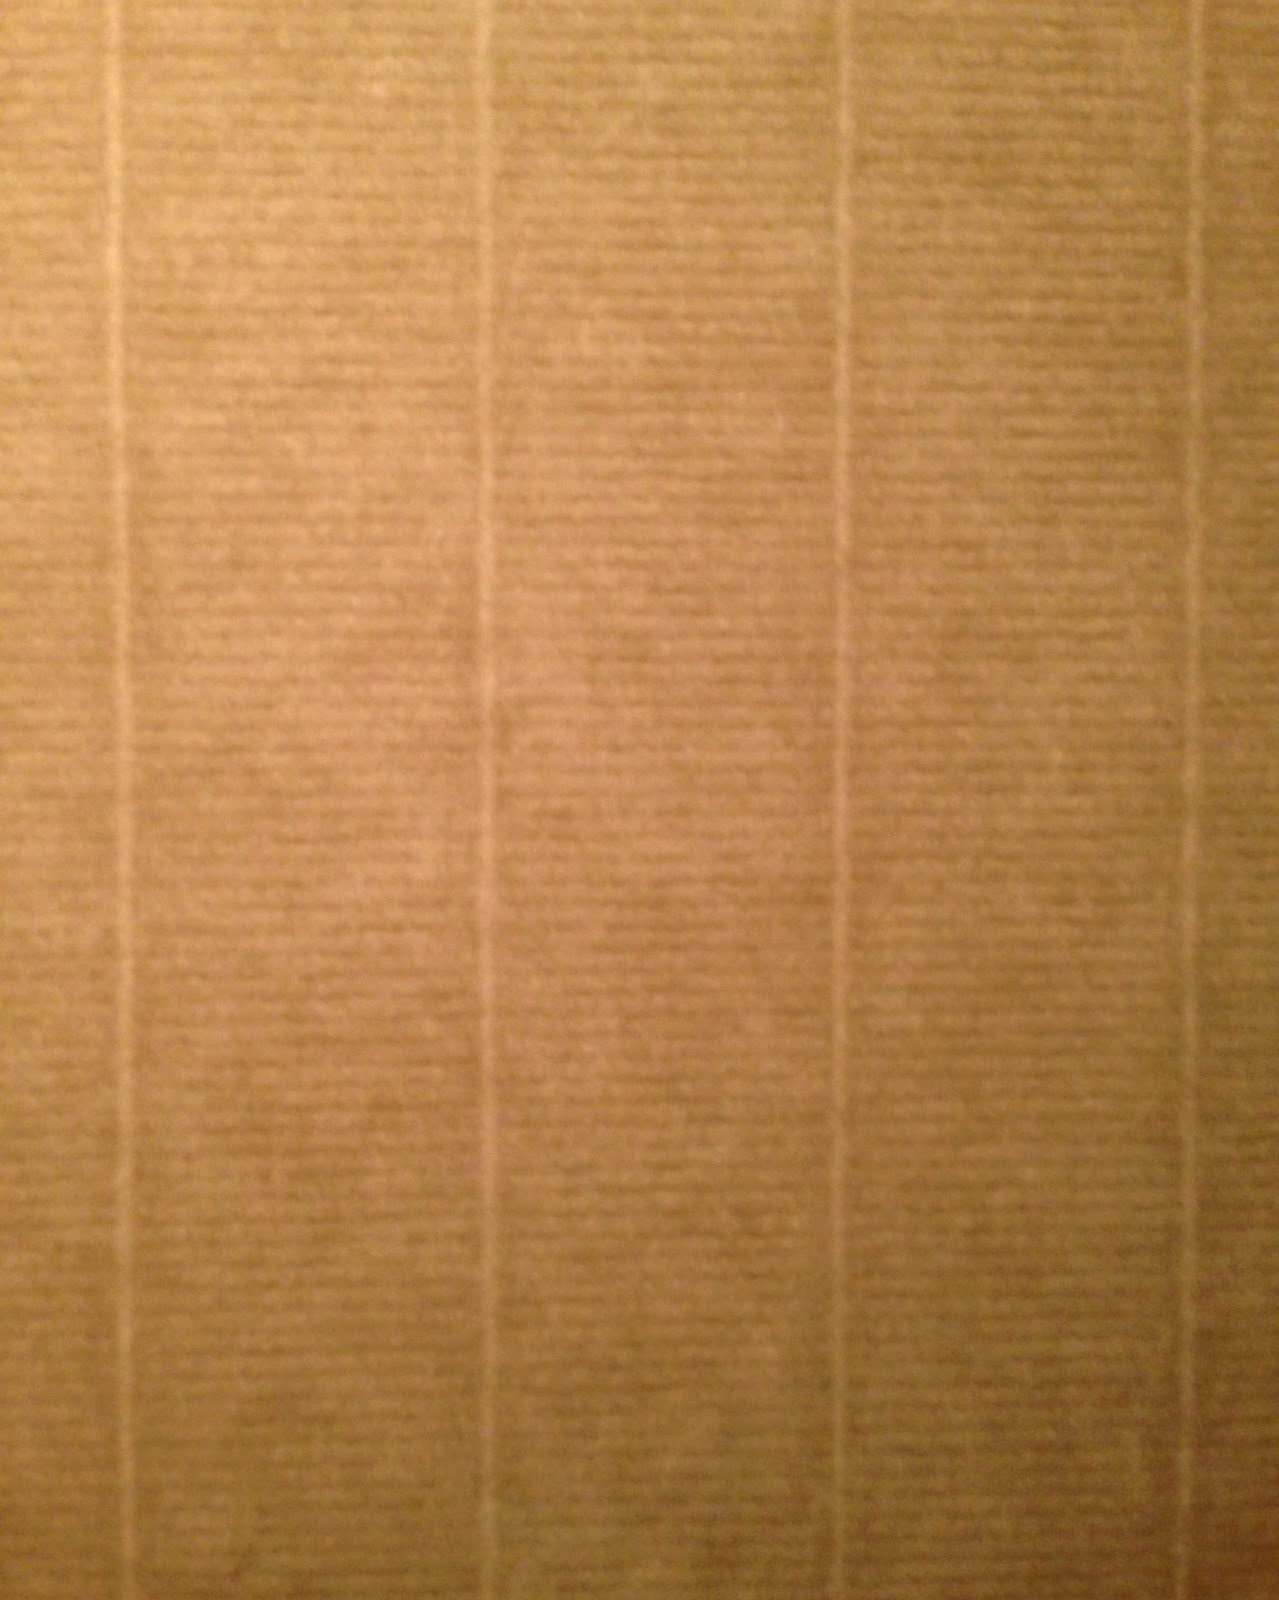 Typical machine made Laid paper pattern.